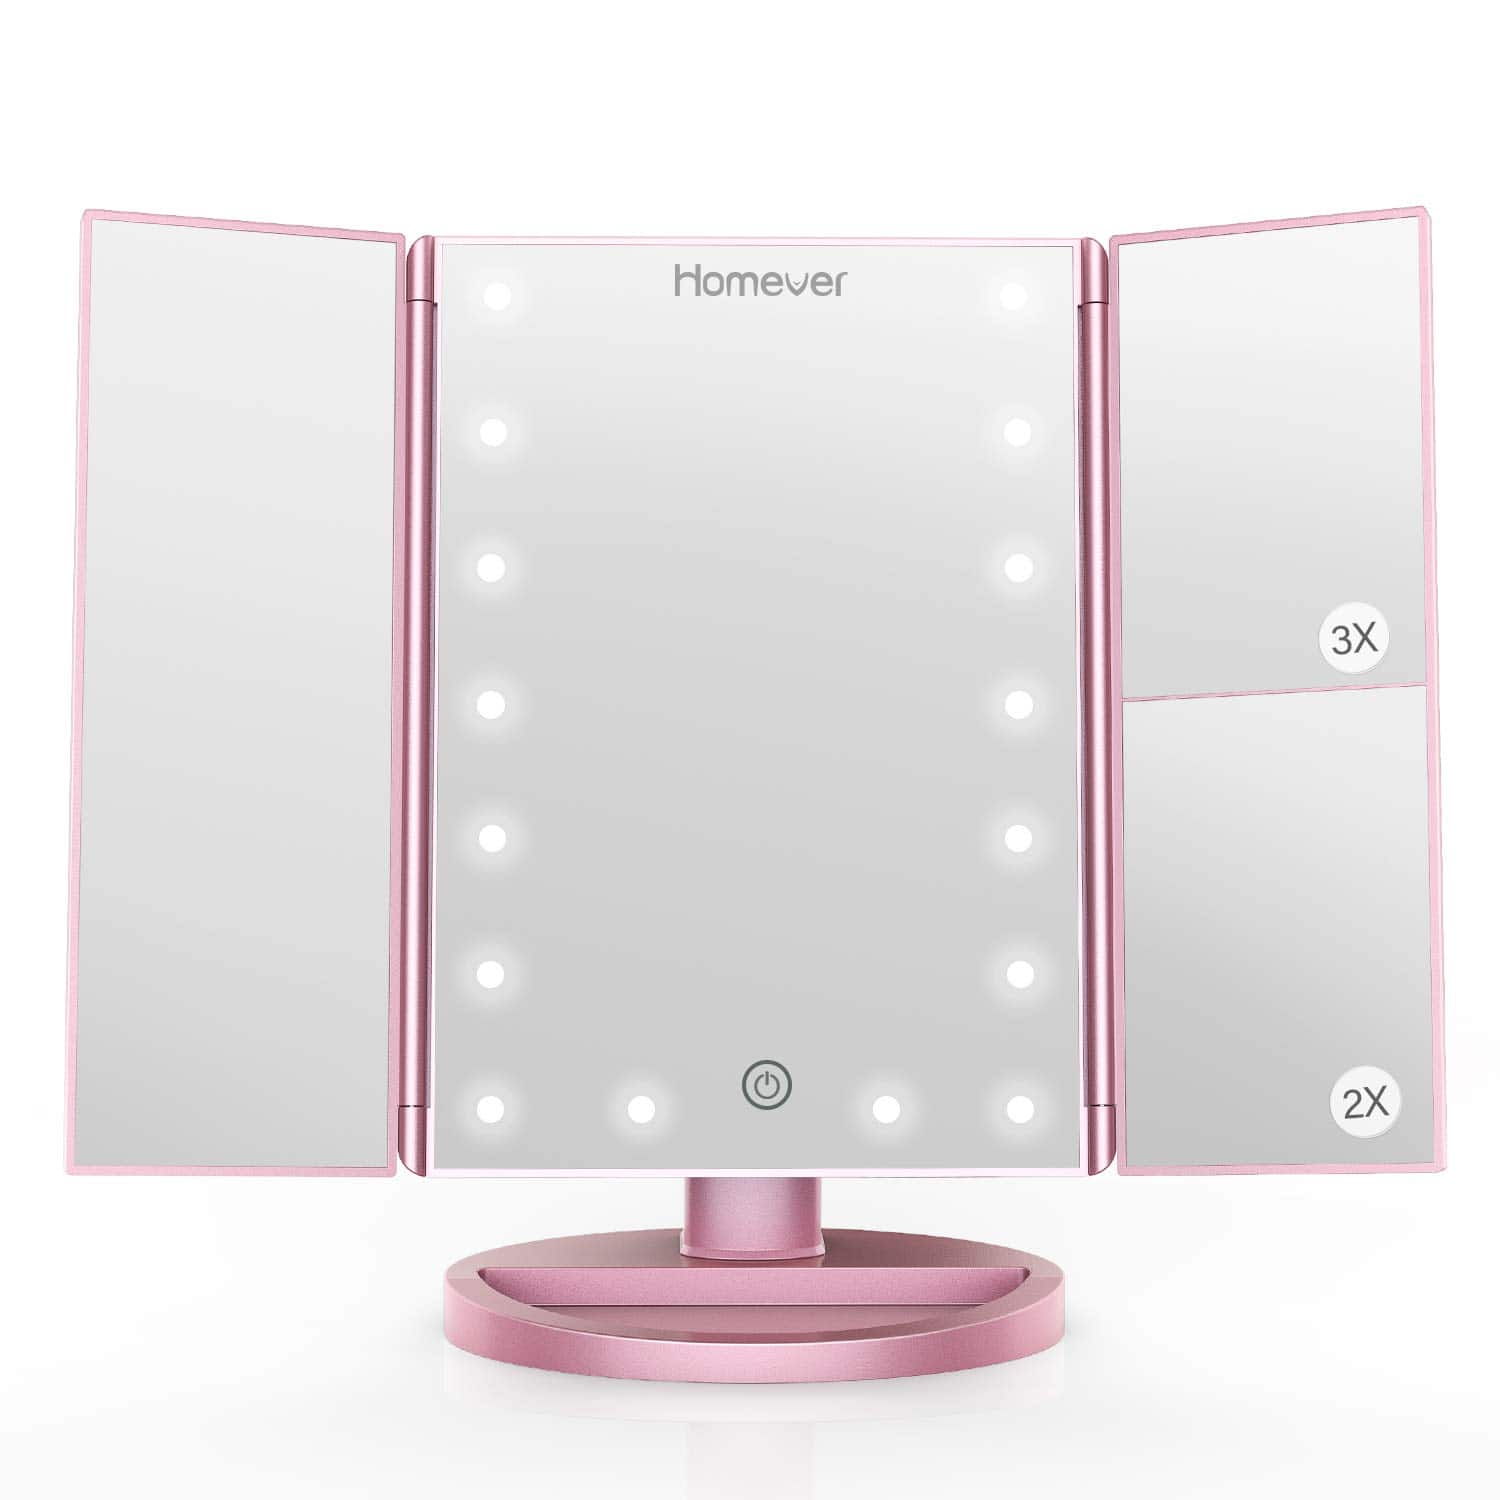 HOMEVER Makeup Mirror 21 LED Lighted with Touch Screen $20.79 + Free Shipping